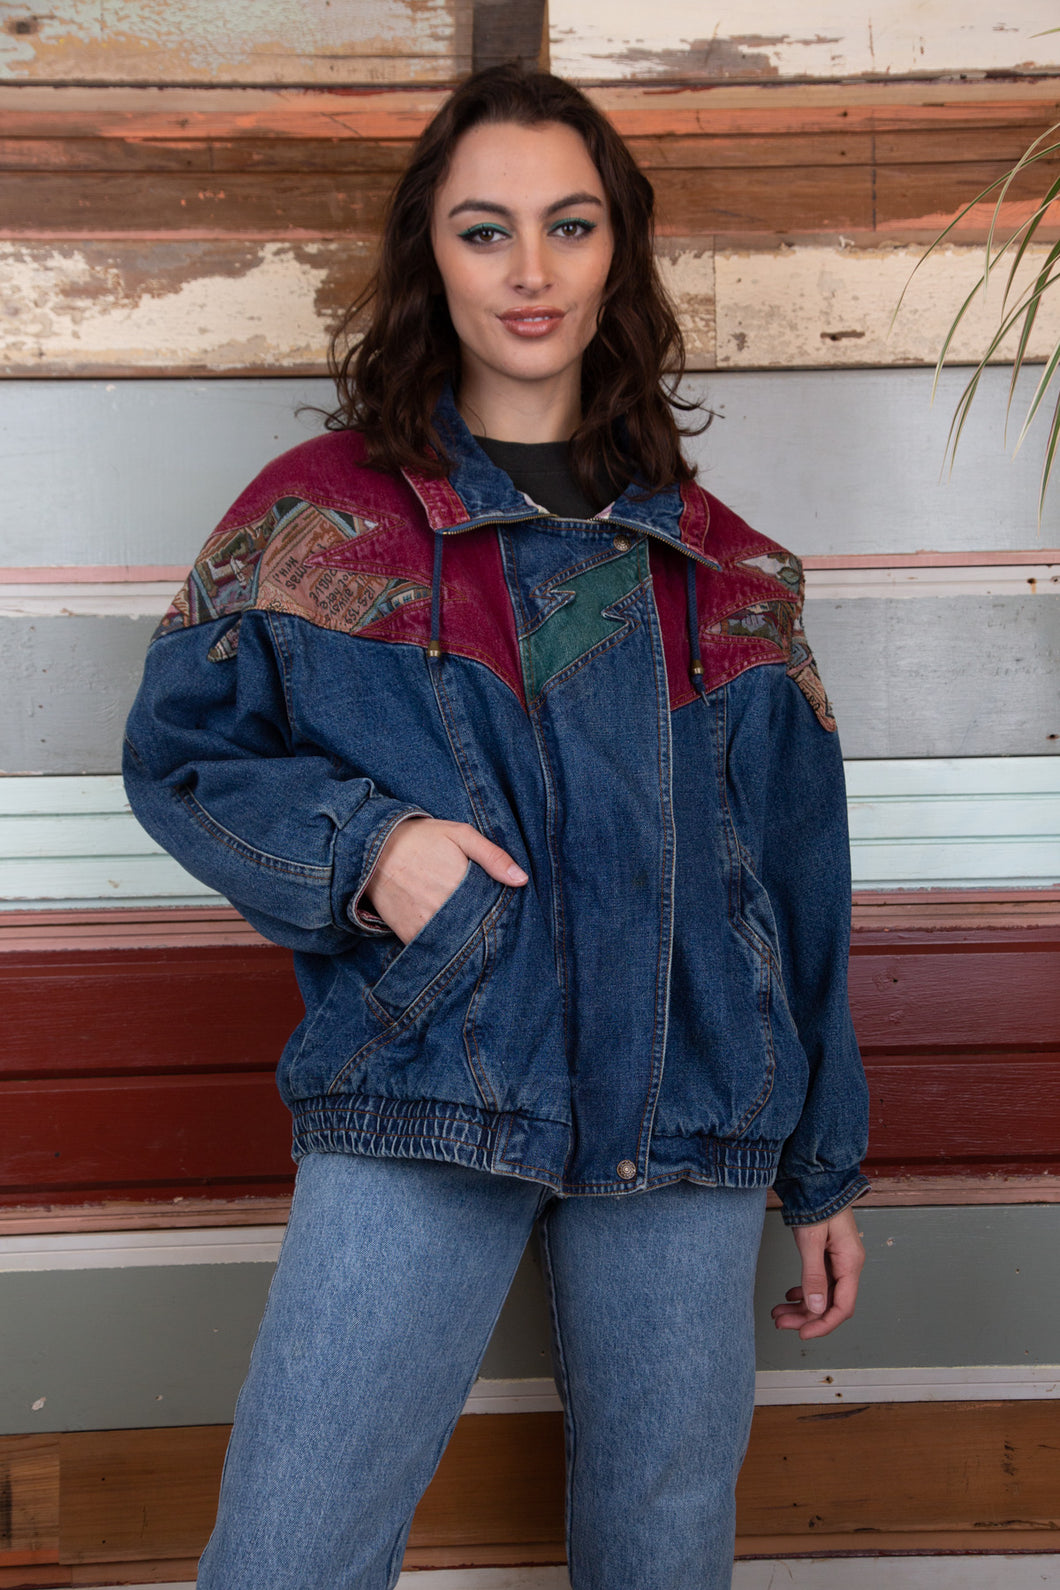 the model is wearing a patch work denim jacket that has patterns on the shoulder, the jacket is thick looking and fits oversized on the model